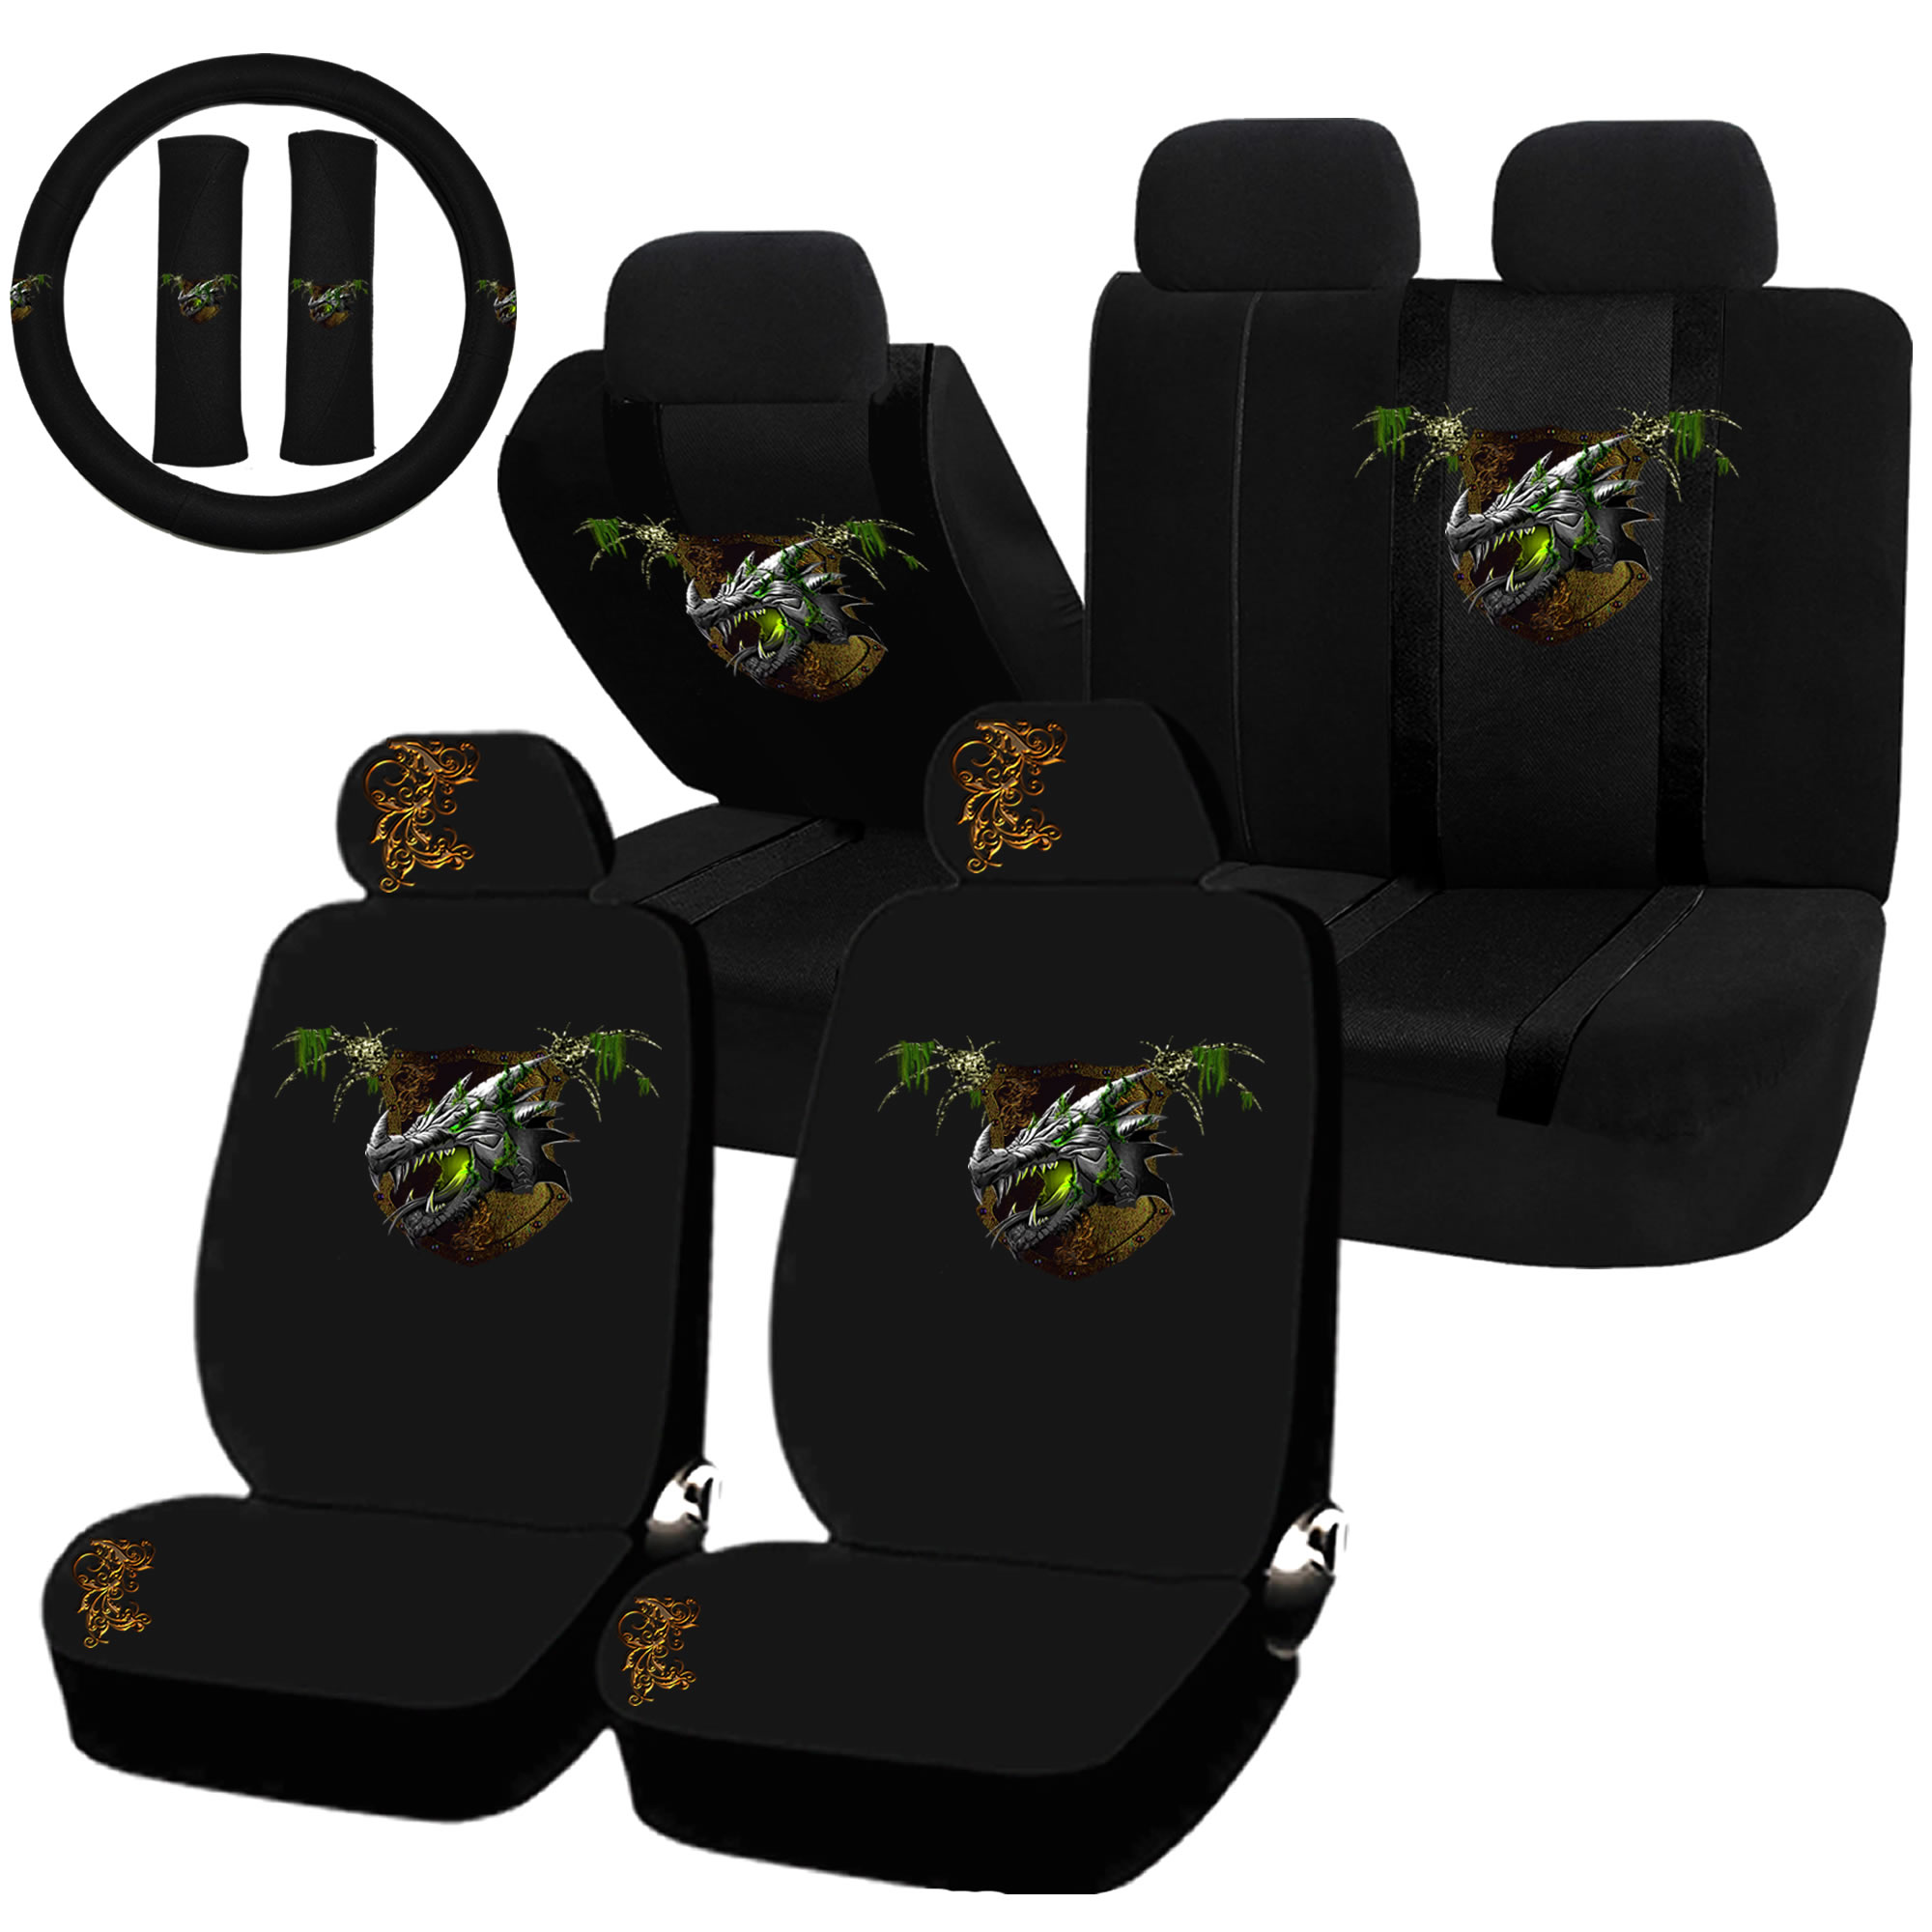 22PC Earth Dragon Green Nature Element Seat Covers & Steering Wheel Set Universal Car Truck SUV